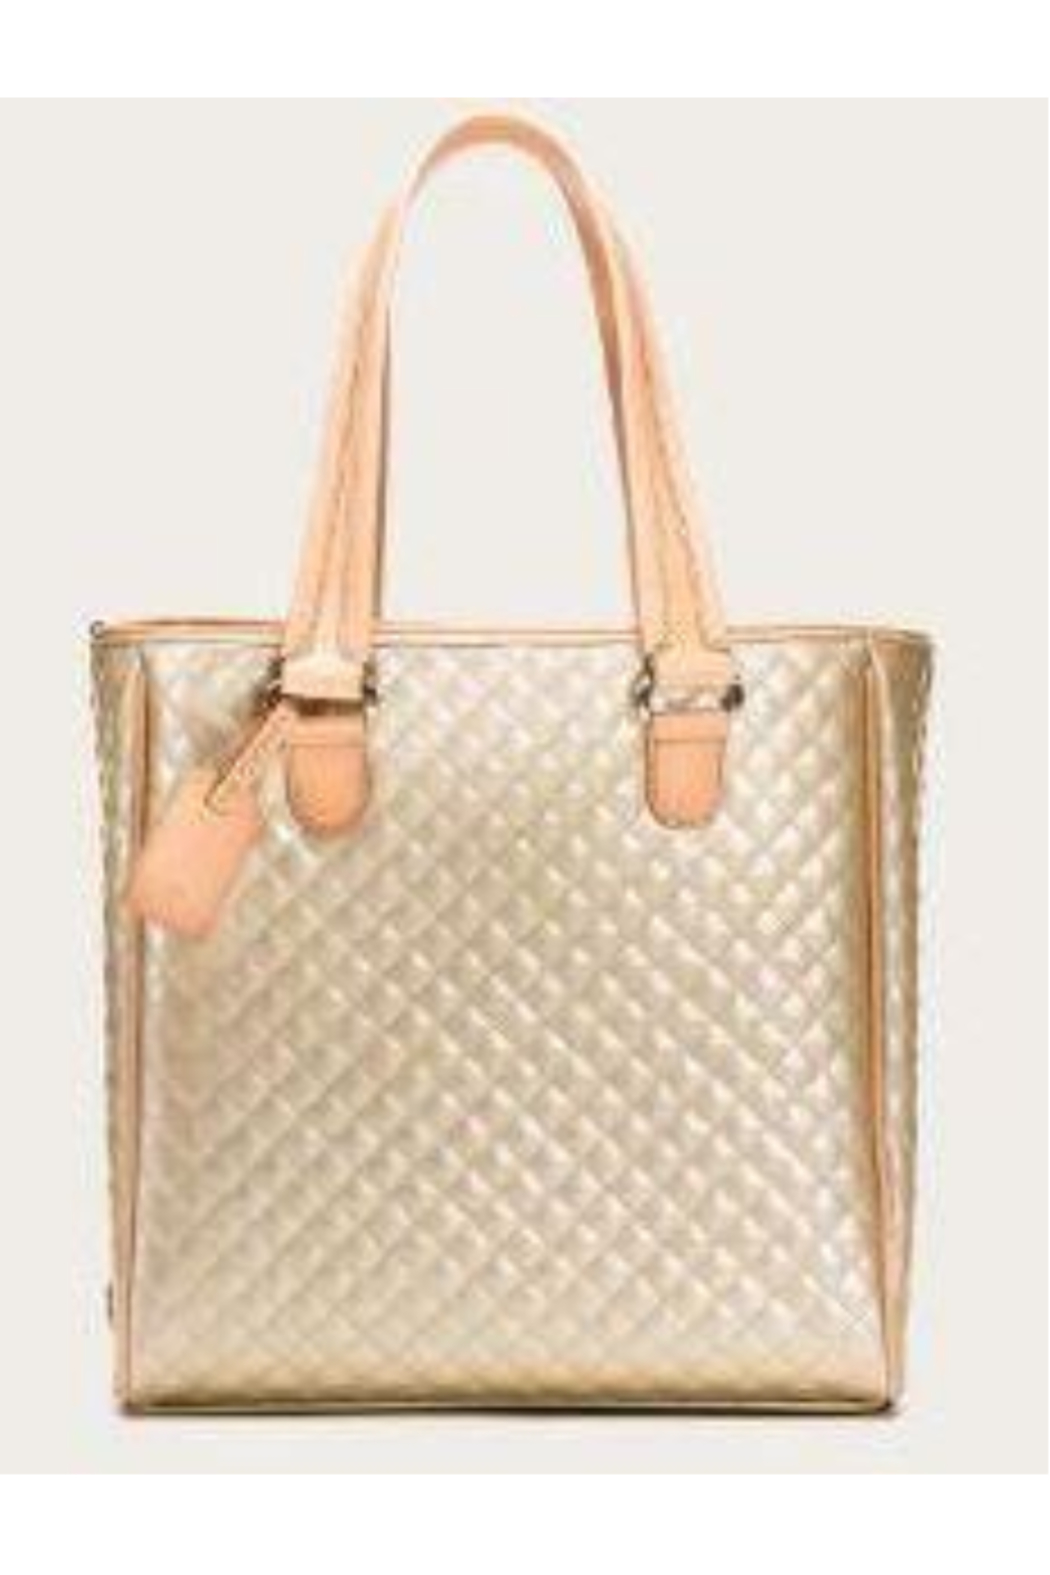 The Birds Nest CLASSIC TOTE-CANDY CHAMPAGNE - Front Full Image